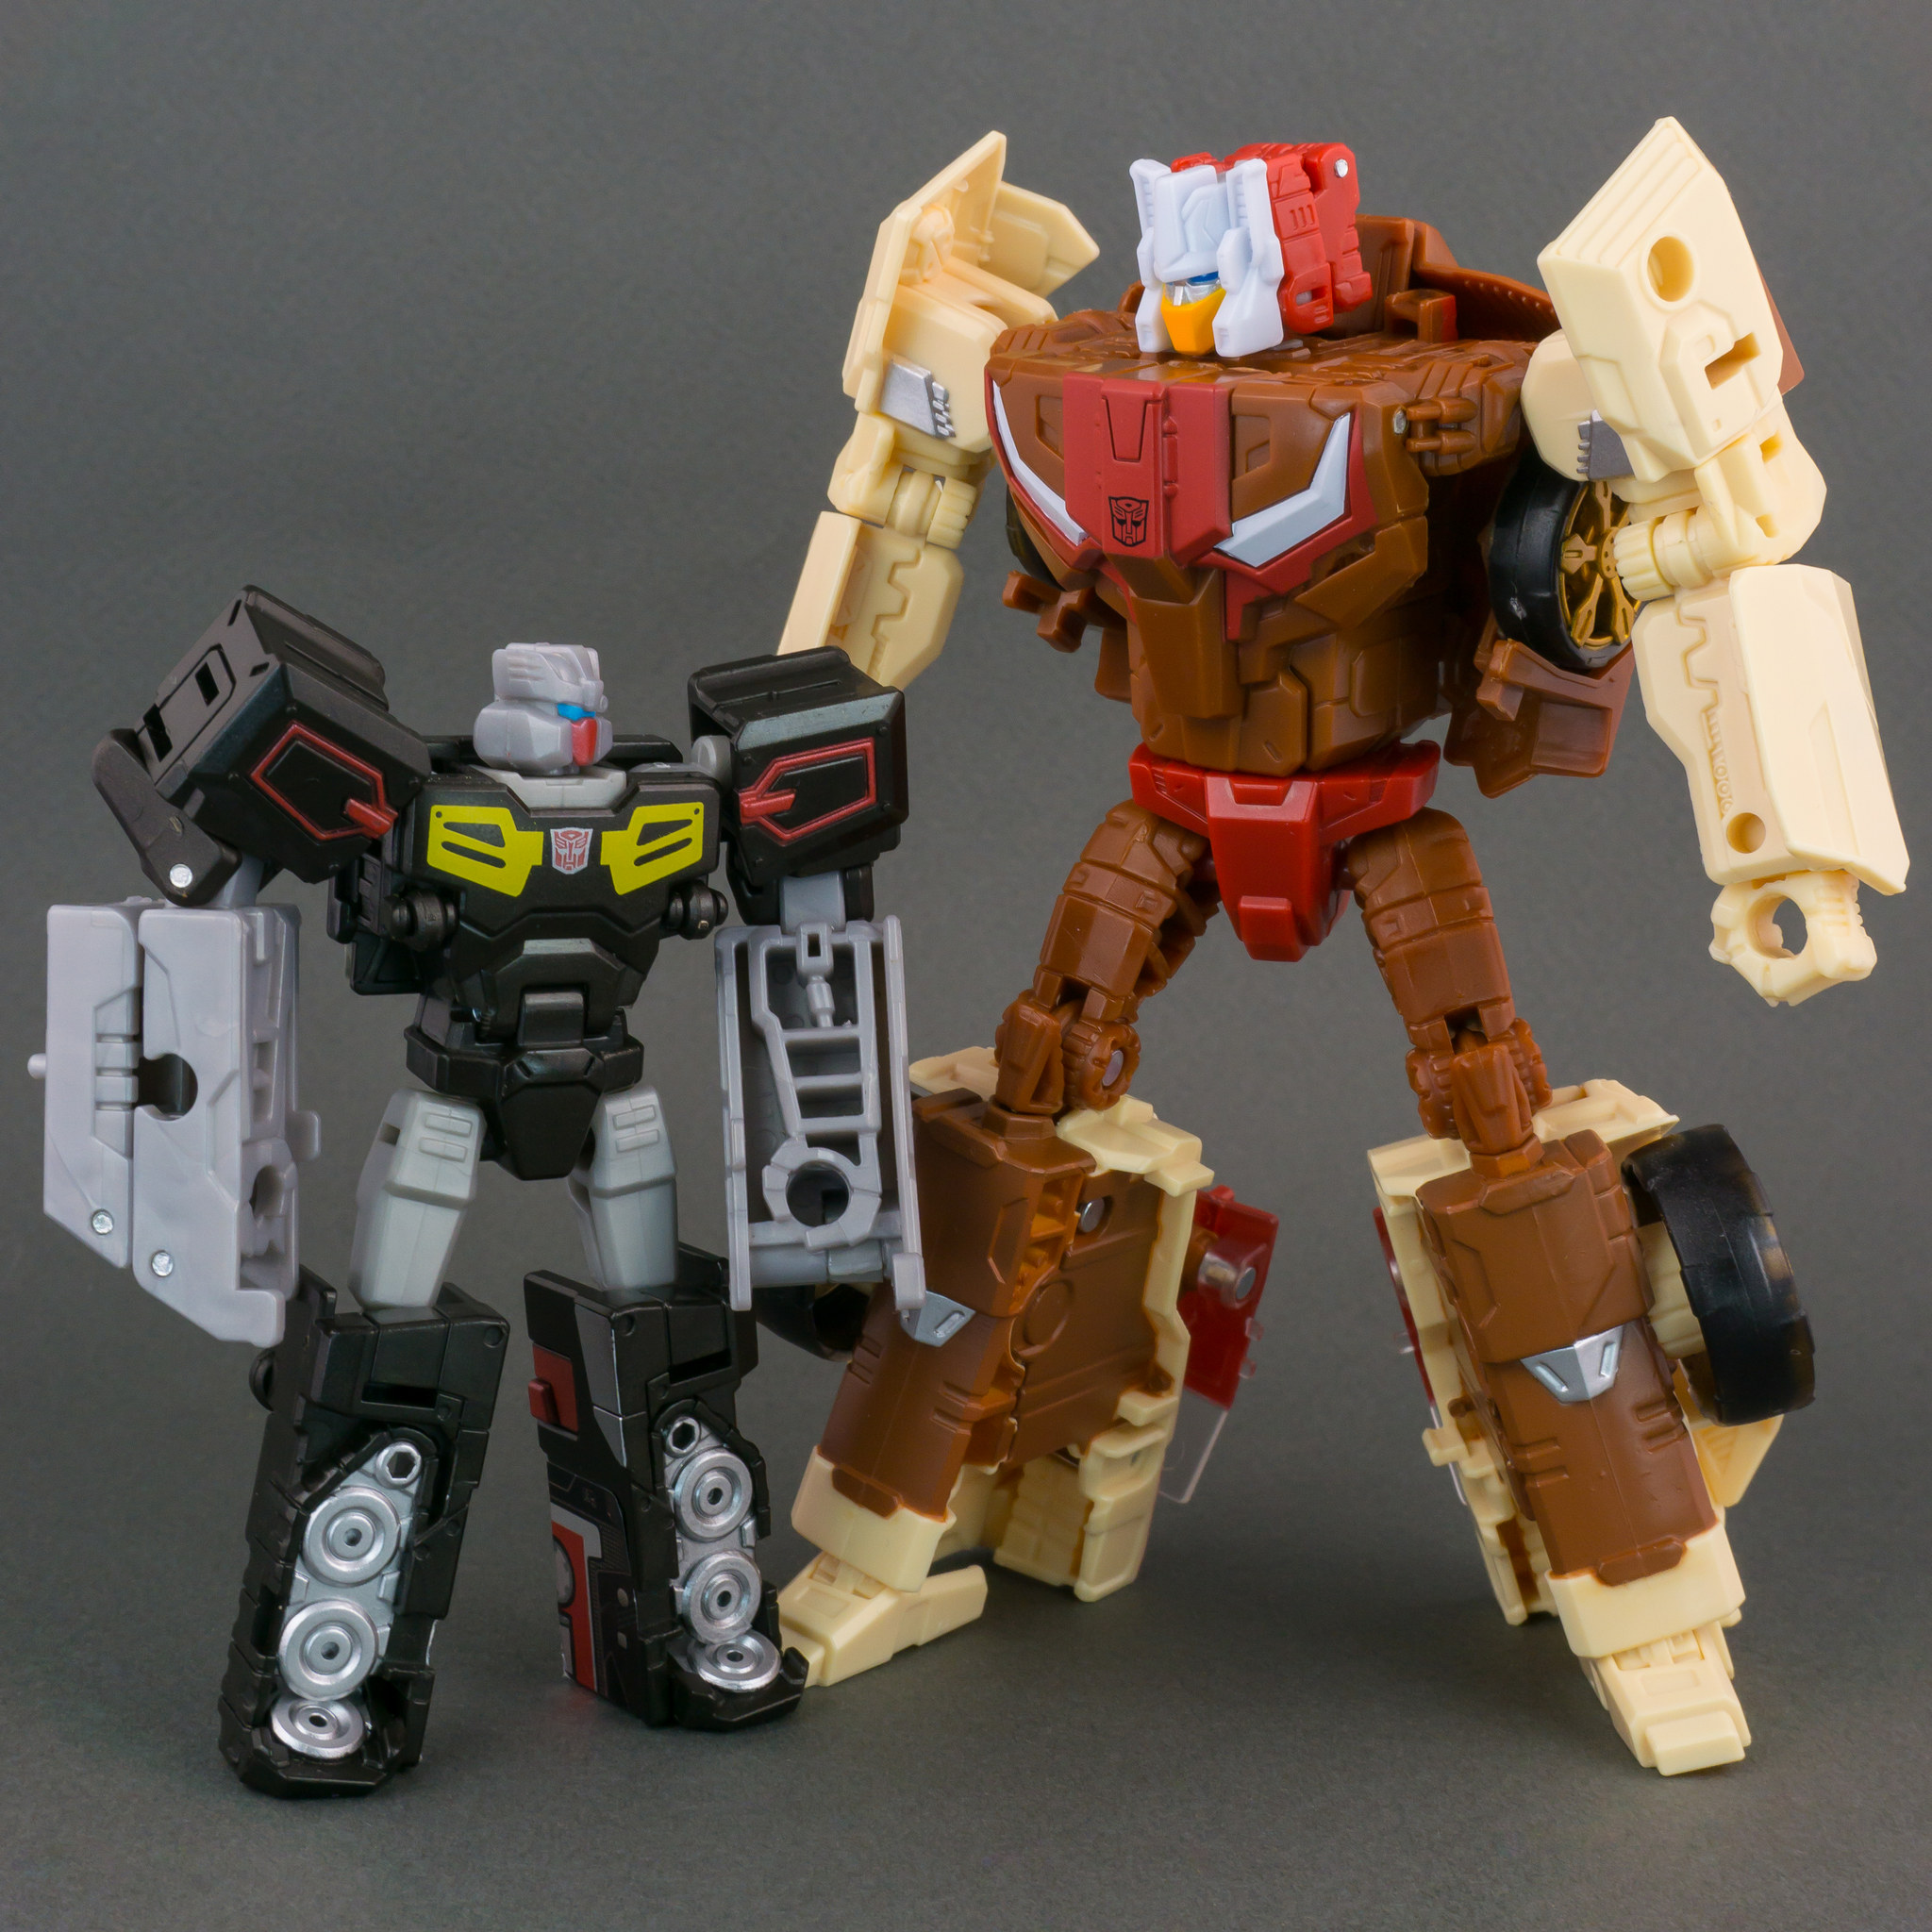 Tfw2005 S Transformers Legends Chromedome Gallery Now Online Transformers News Tfw2005